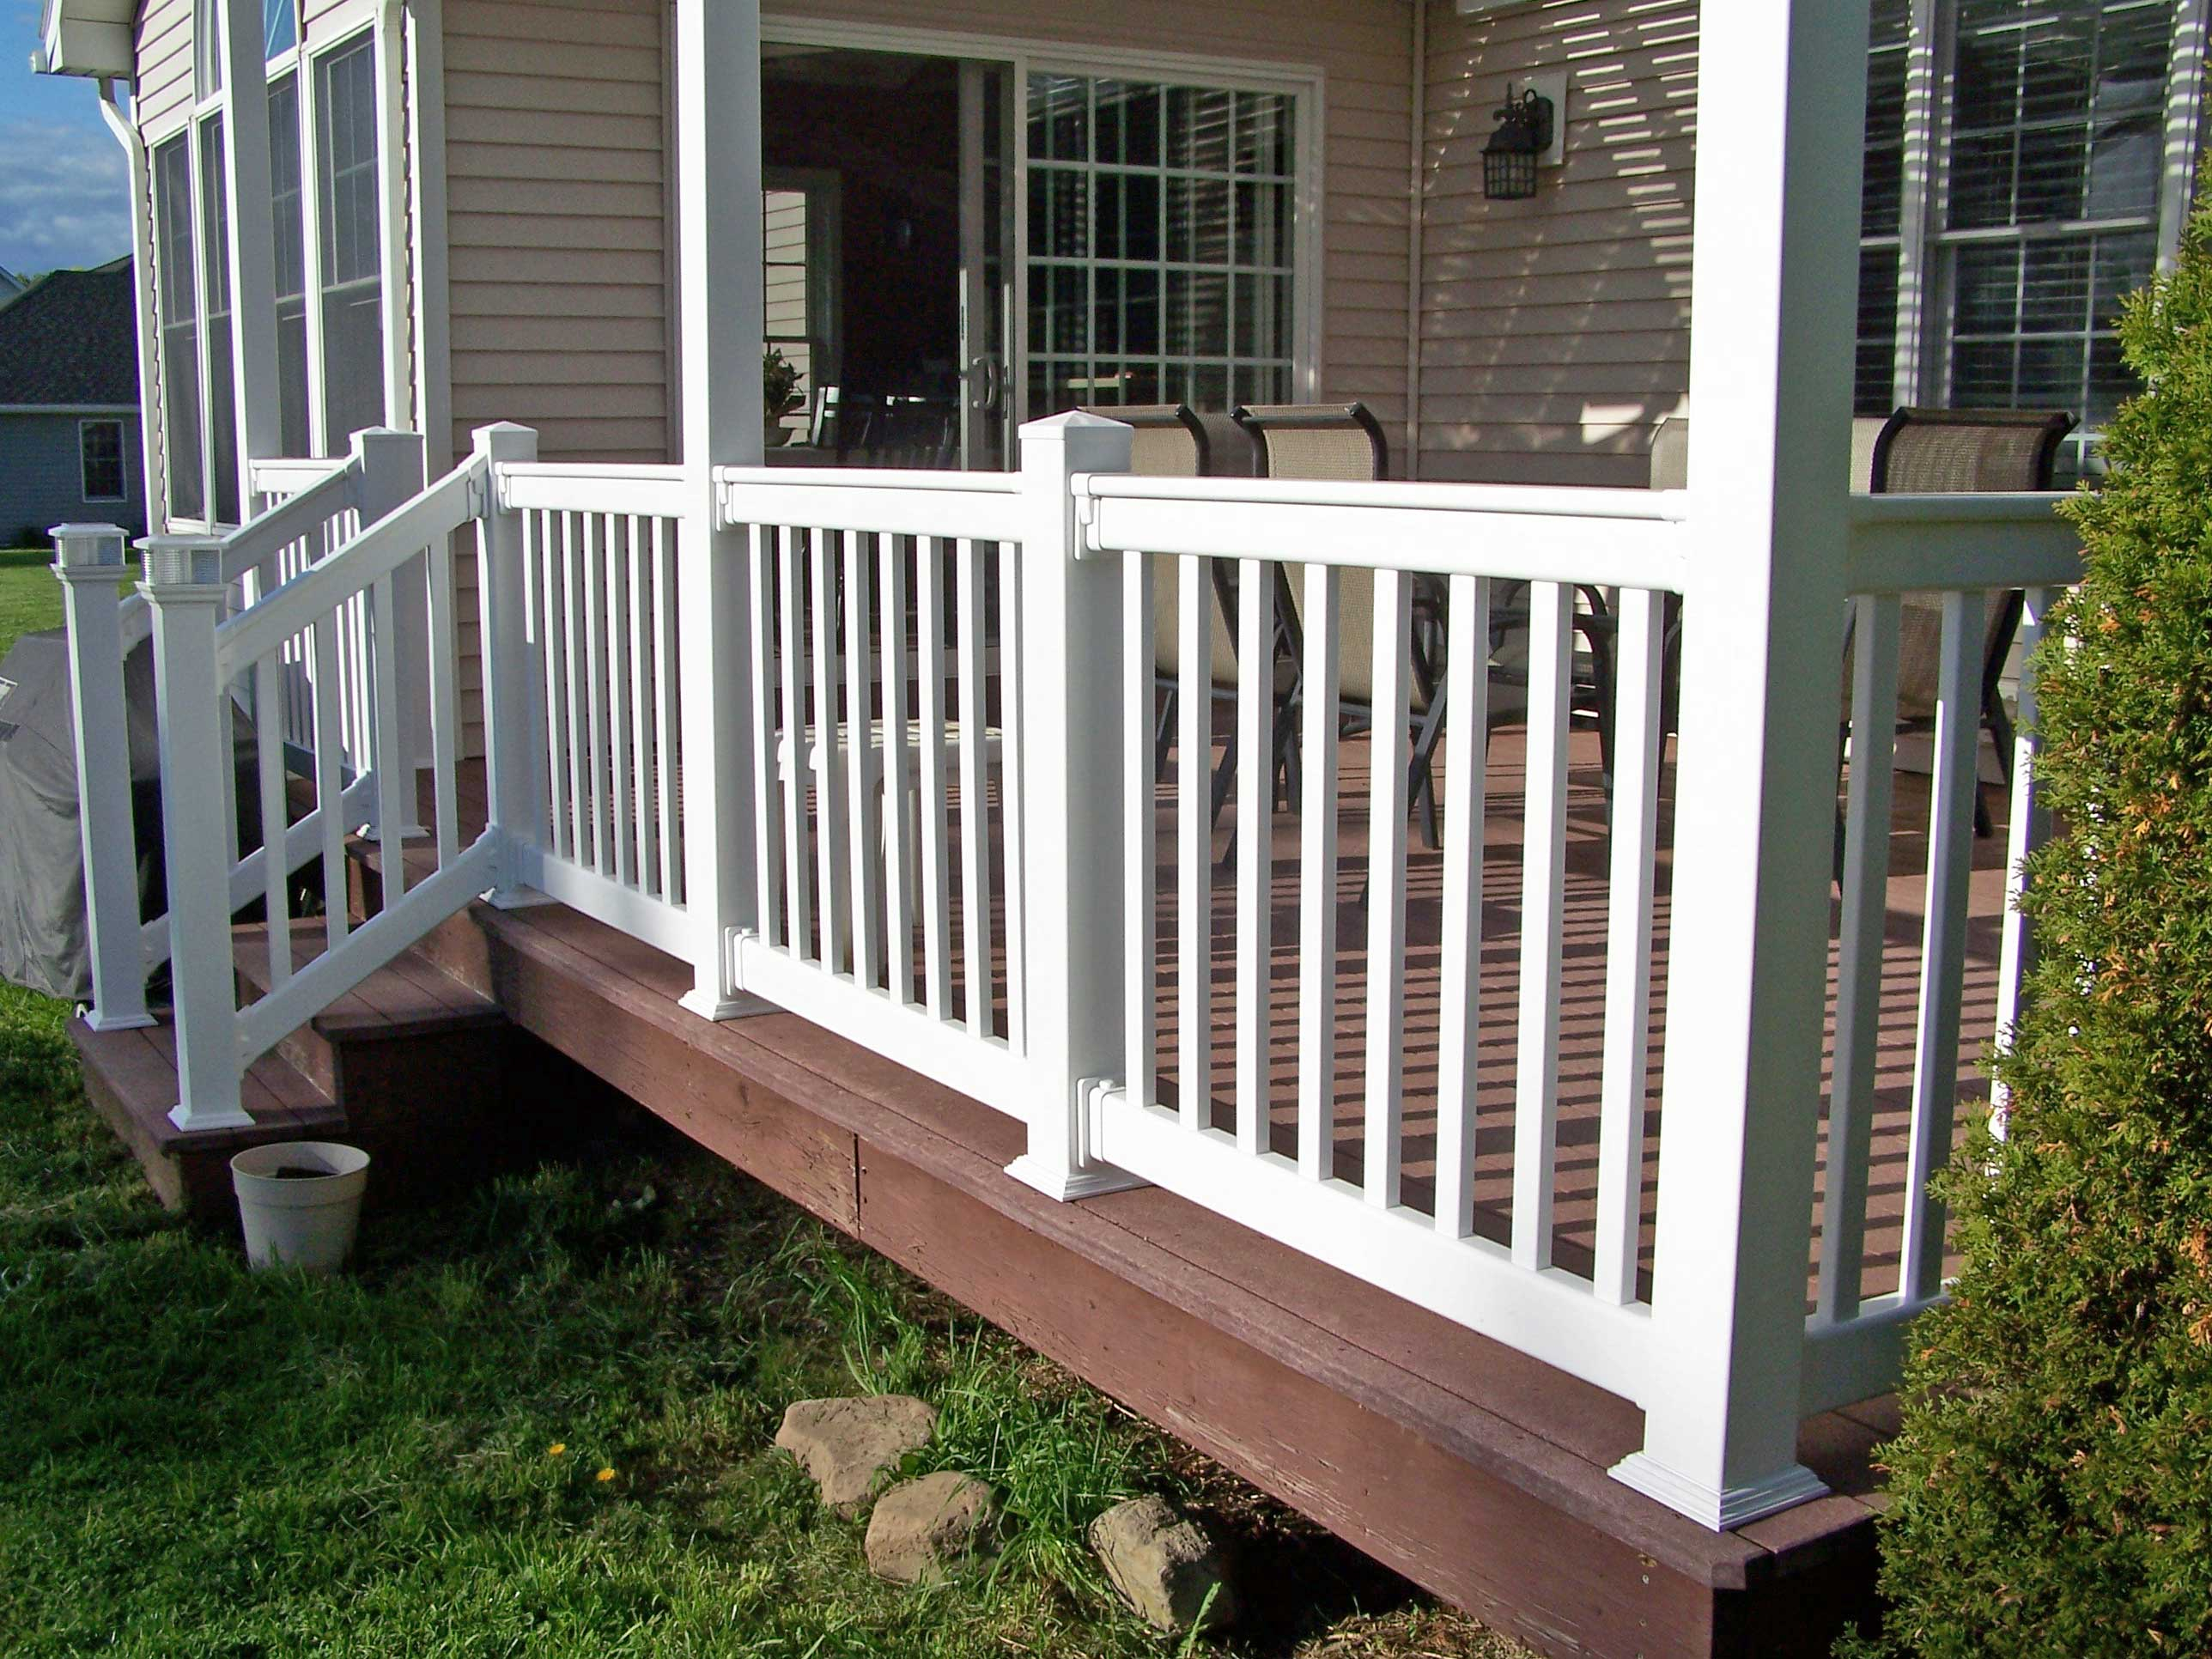 Vinyl Railing Install Clinton Ny Poly Enterprises inside size 2576 X 1932